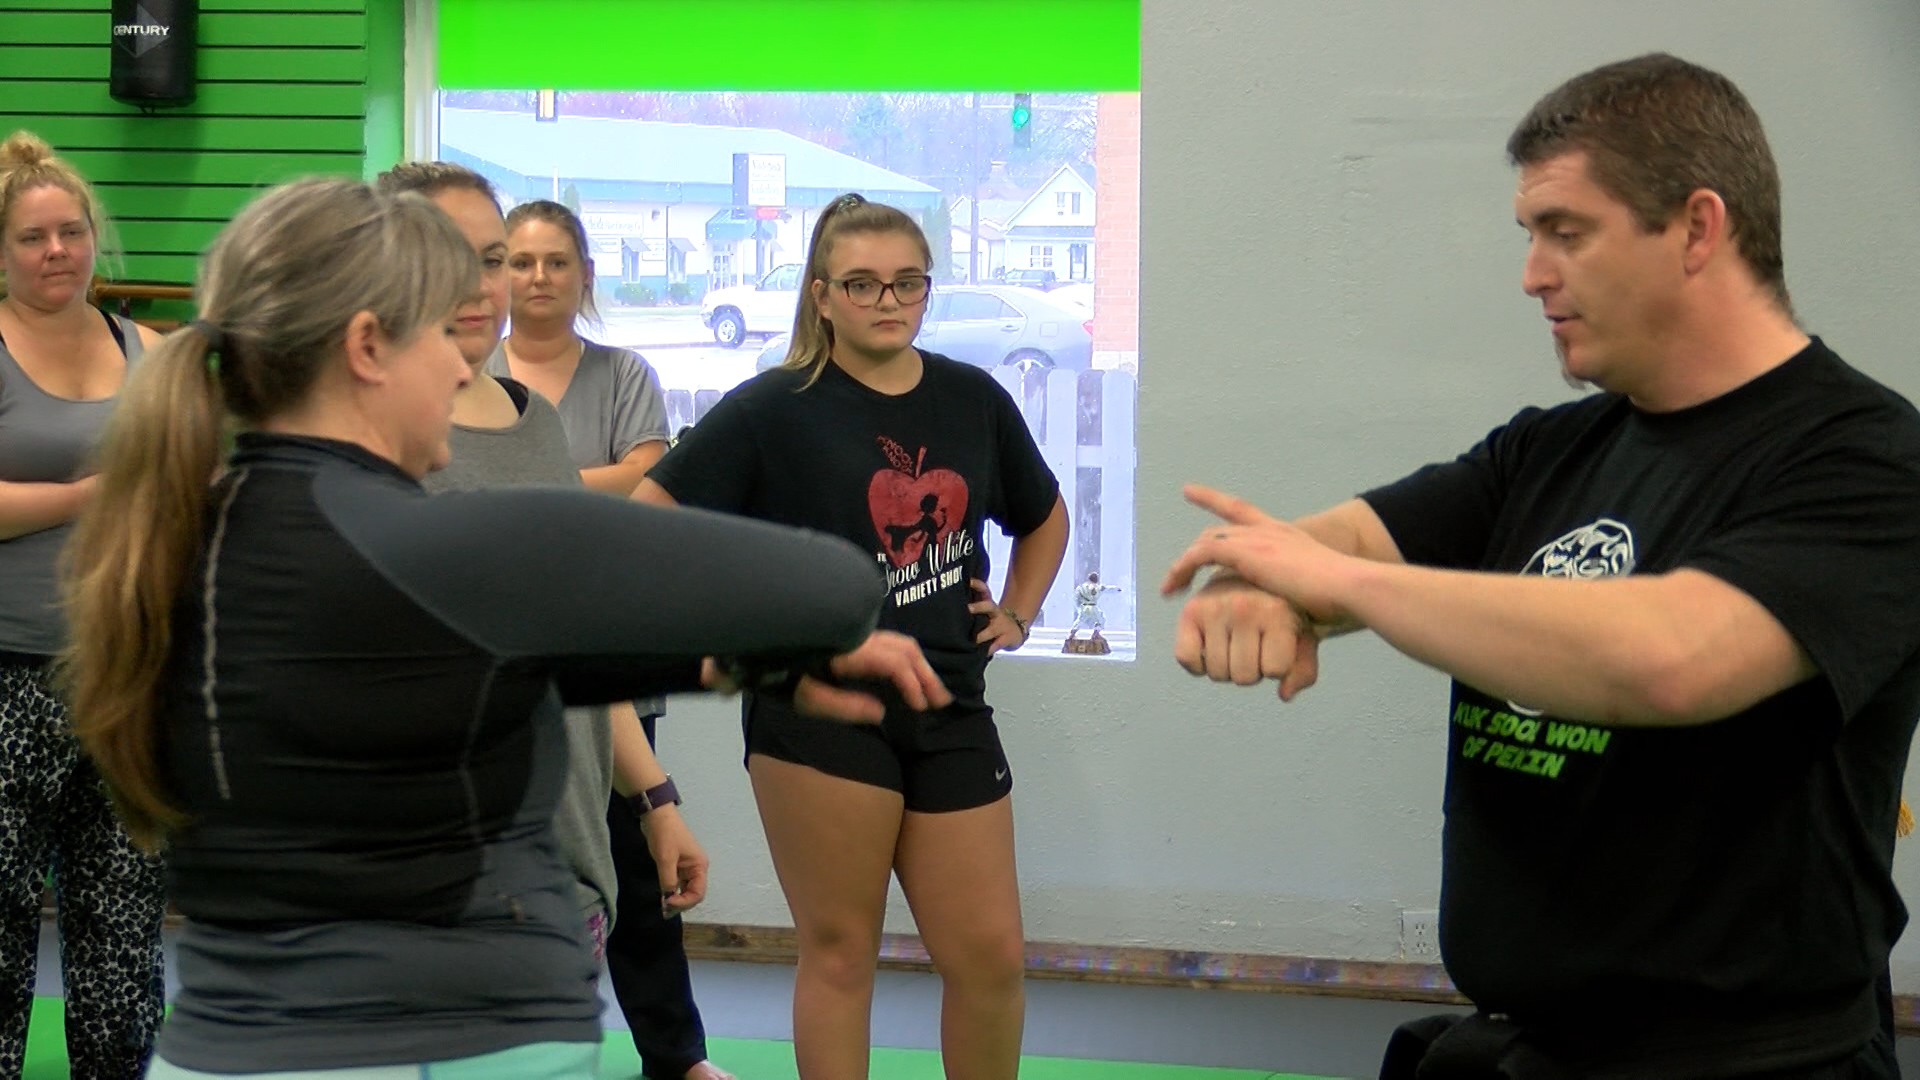 WOMEN'S SELF DEFENSE_1523760185727.jpg.jpg